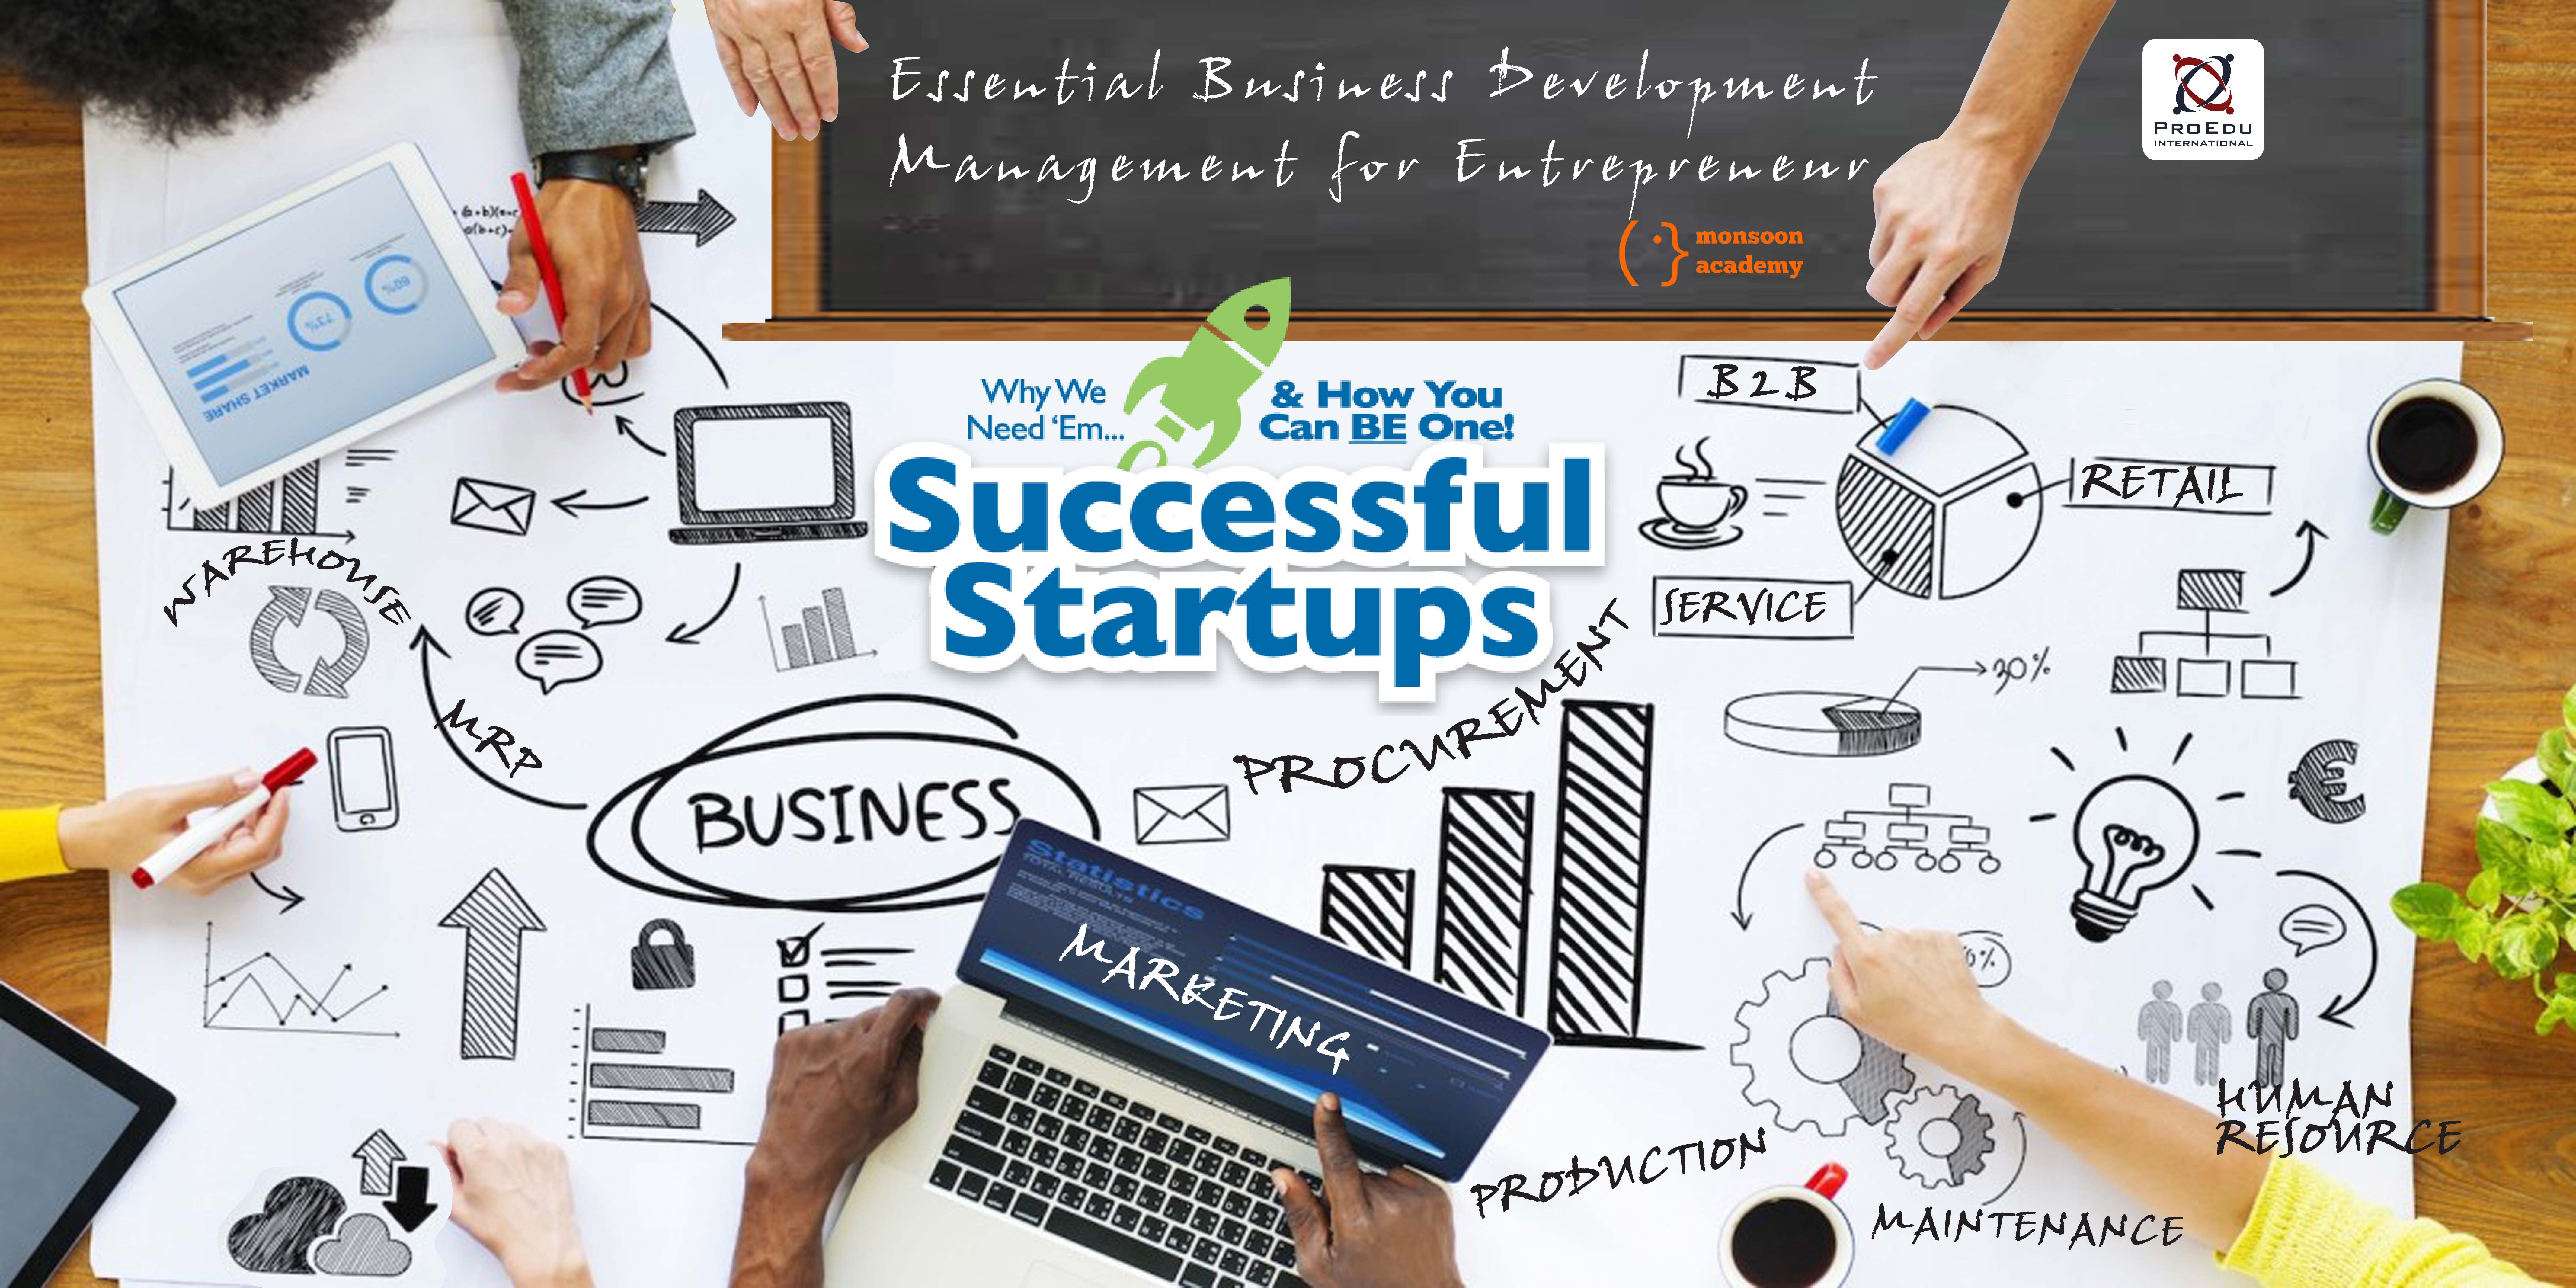 Essential Business Development Management for Entrepreneurs